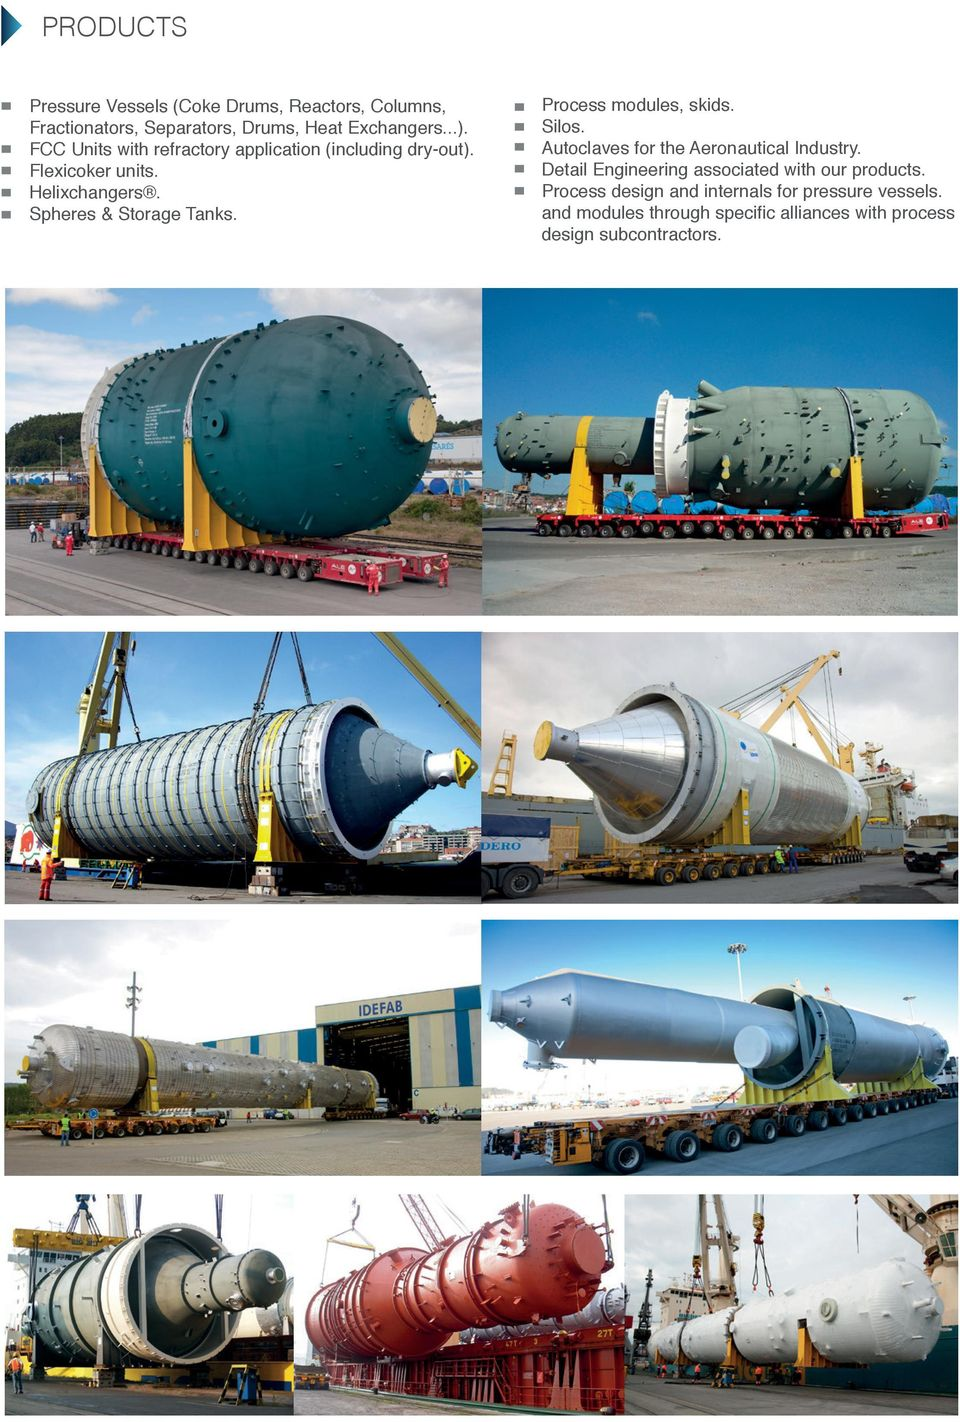 Process modules, skids. Silos. Autoclaves for the Aeronautical Industry.